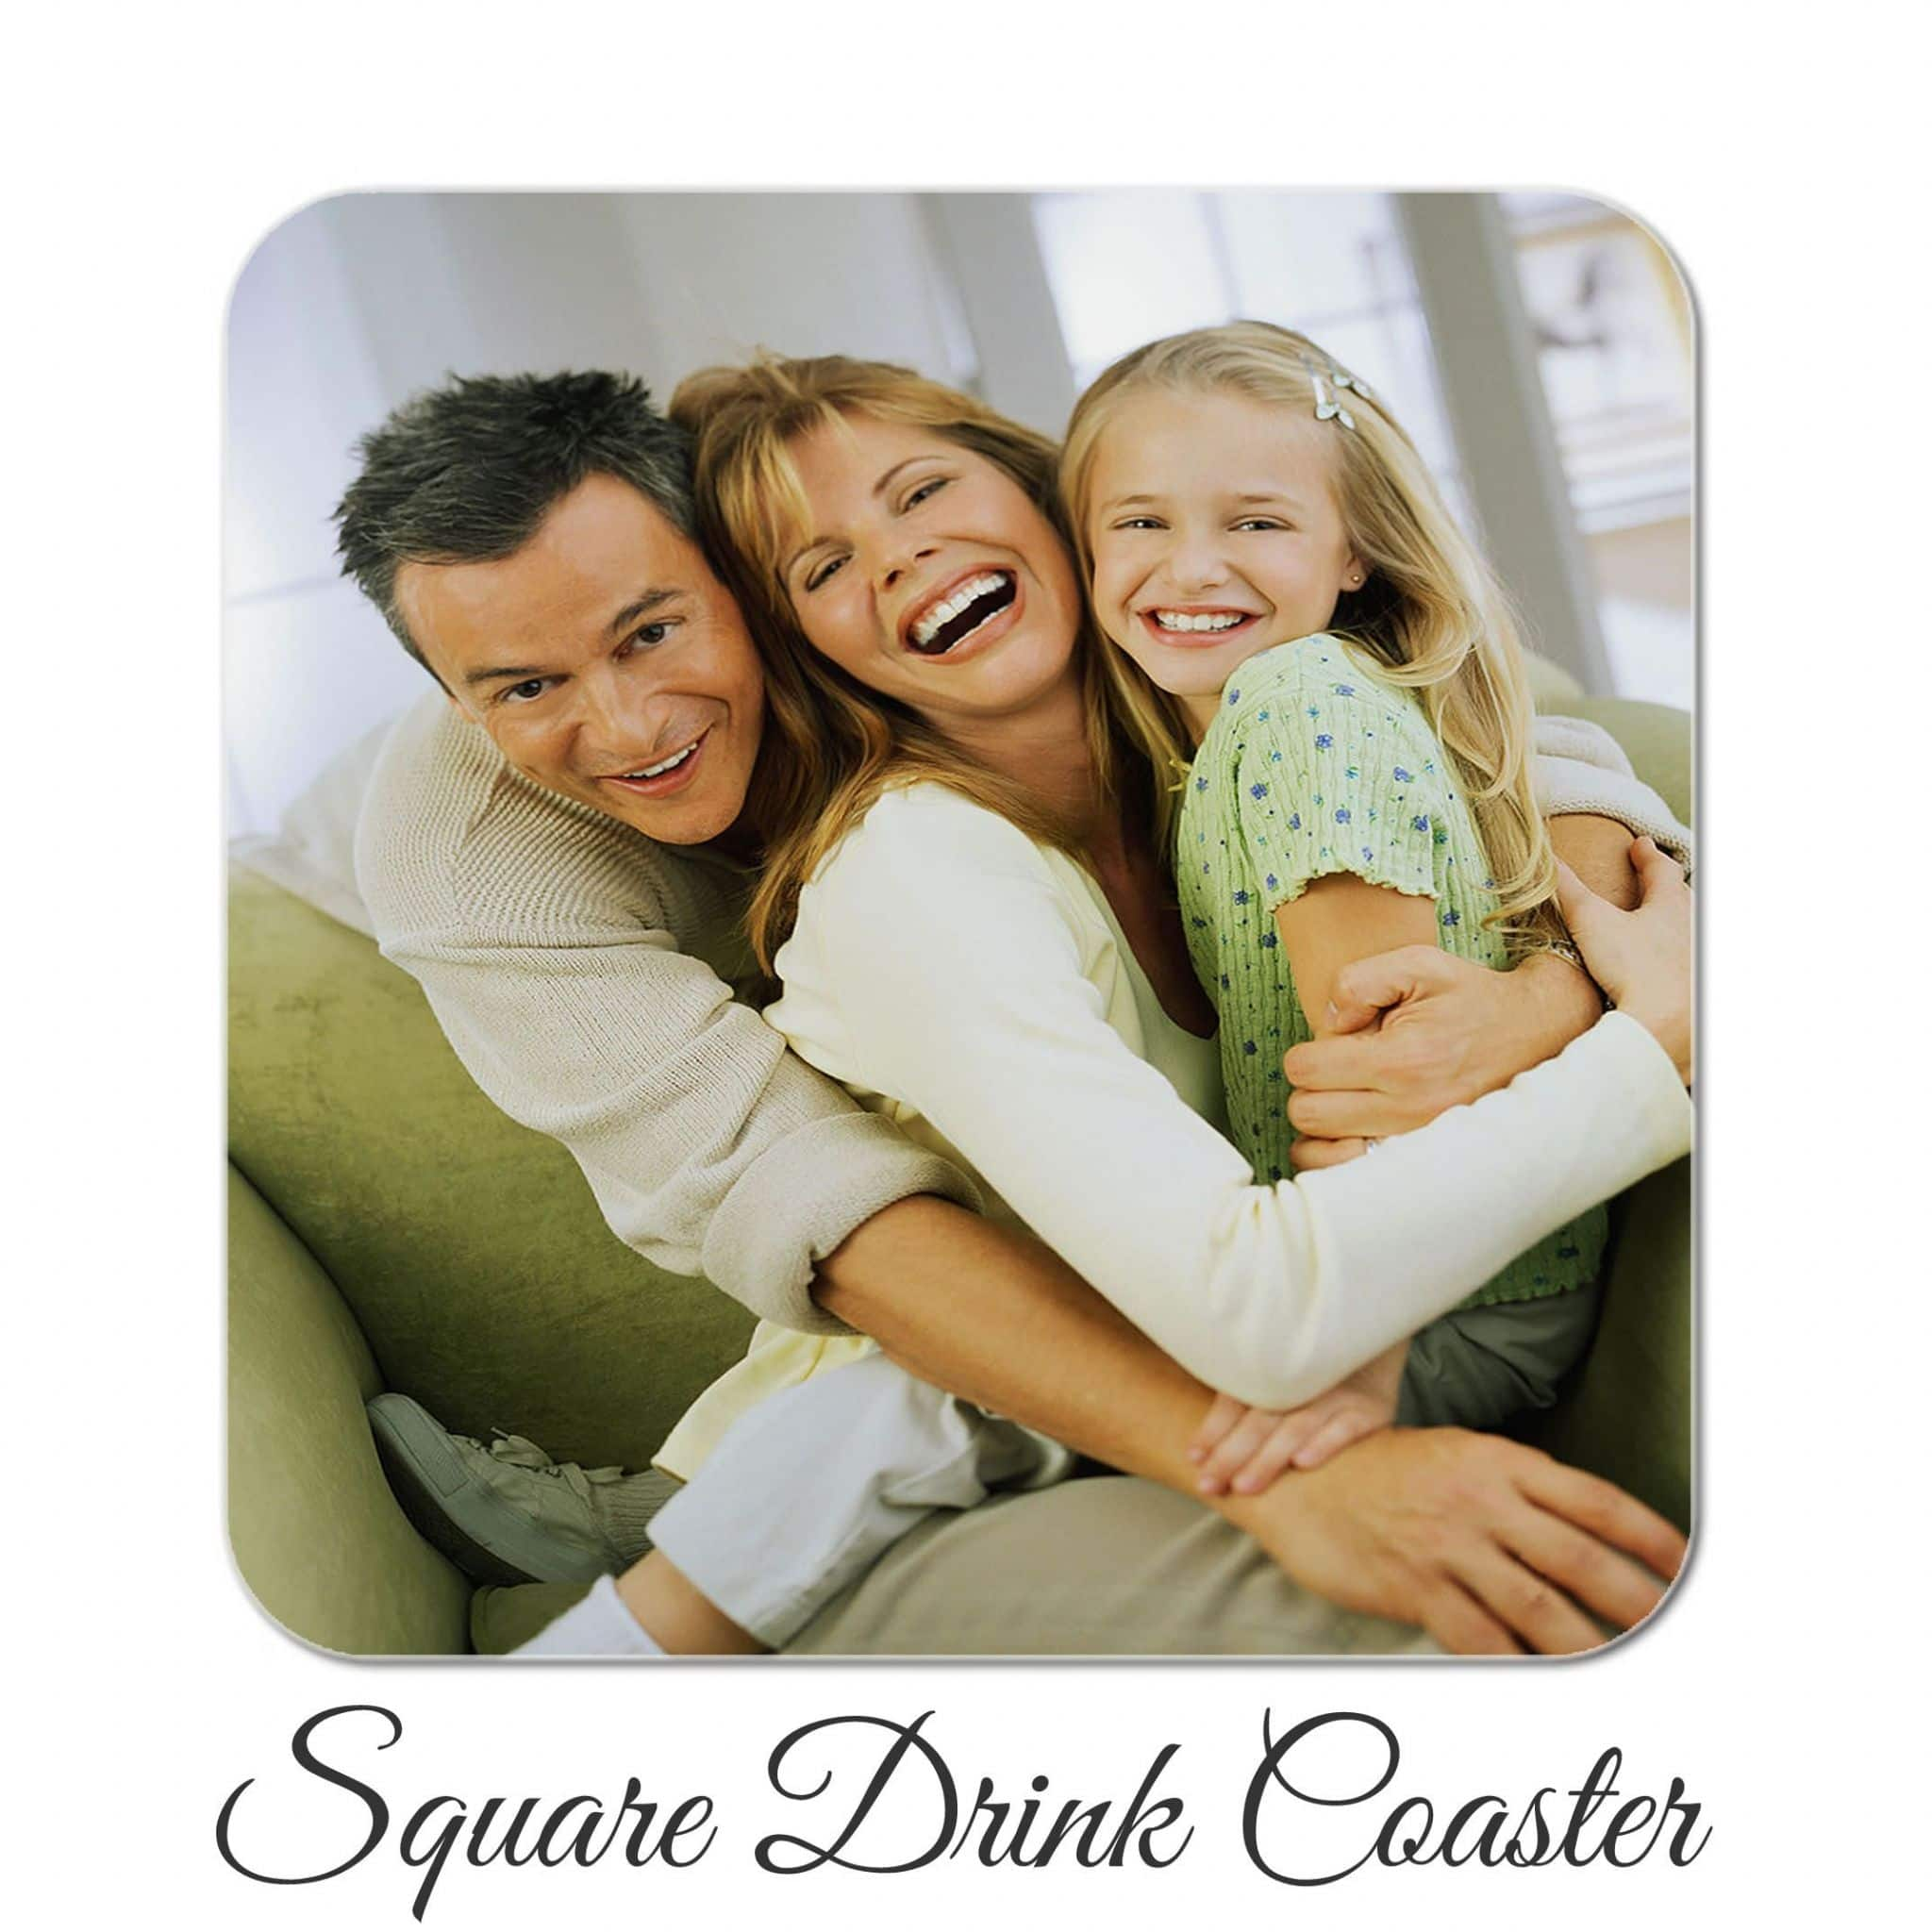 Little Gifts With Love - Personalised Photo Square Drink Coaster With Your Own Photo or Image